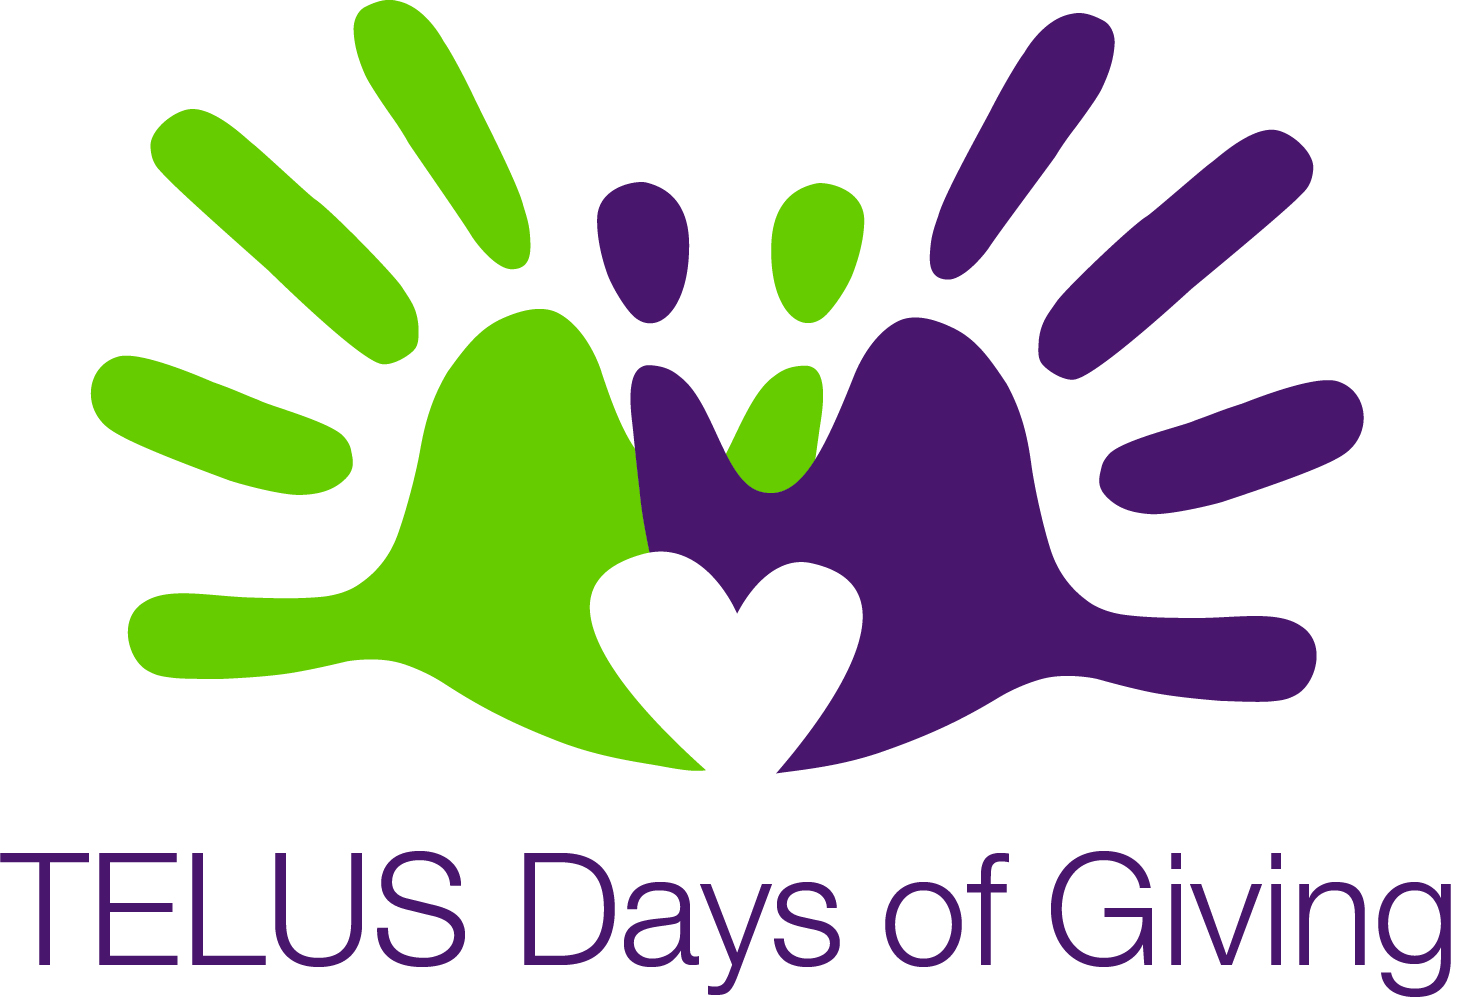 TELUS Days of Giving logo